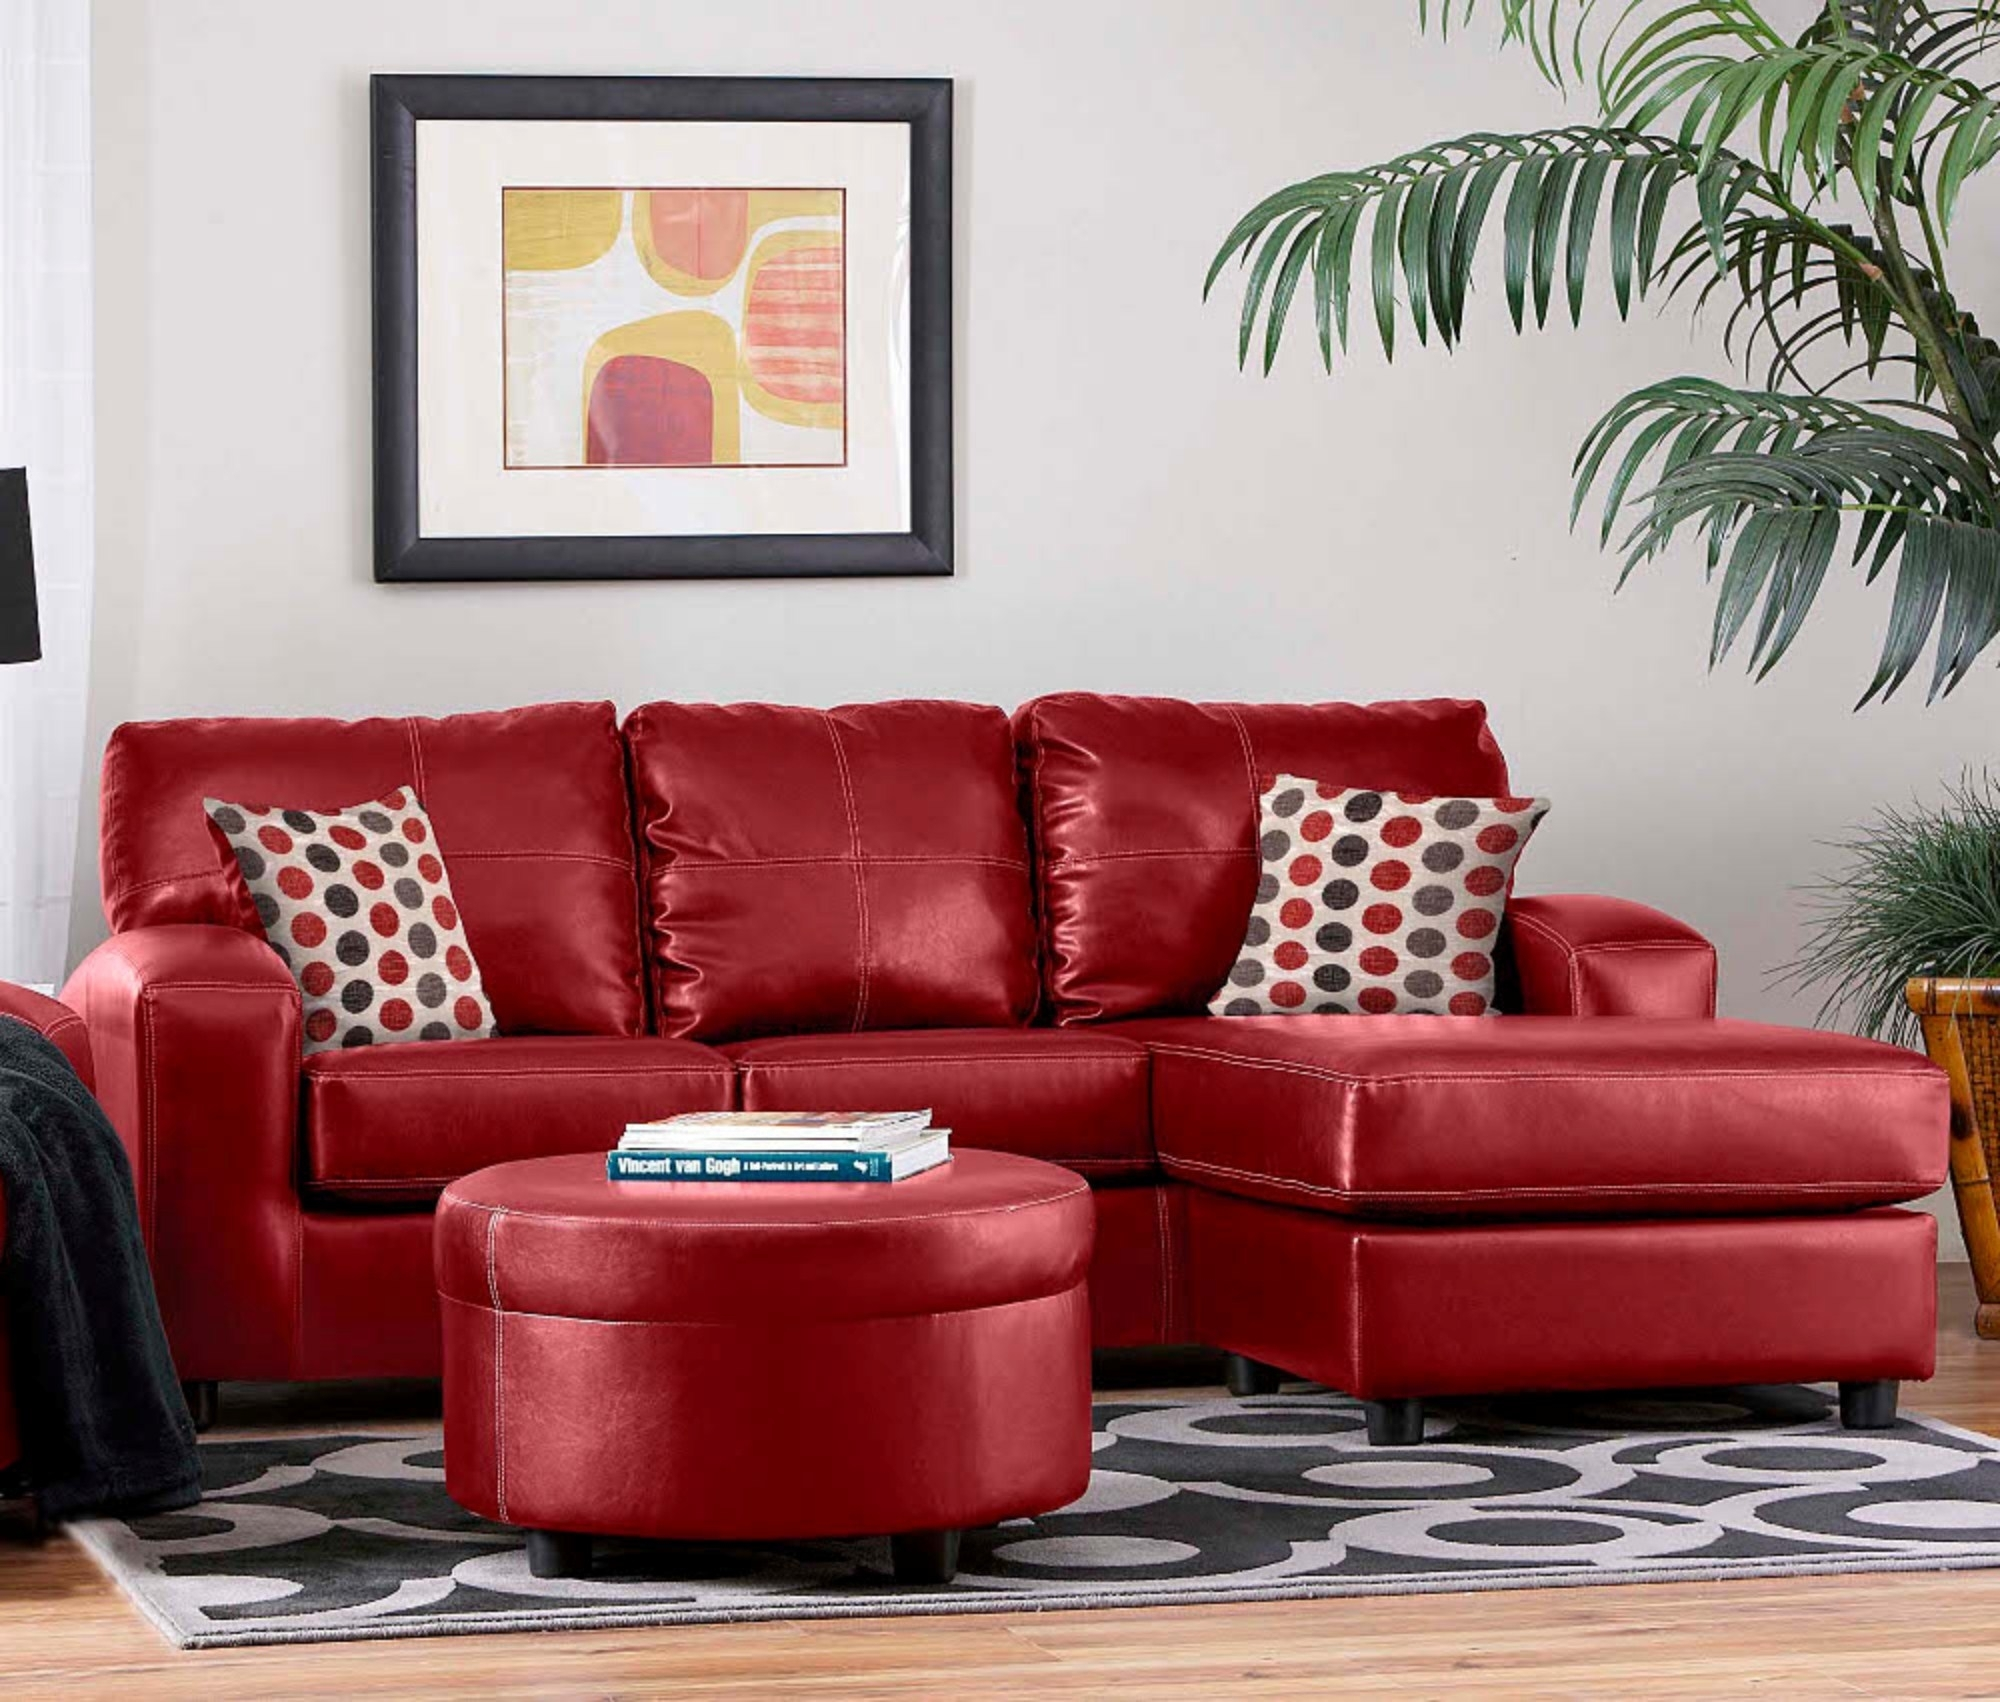 Grey Living Room Red Couch Imanada Leather Sectional Sofa With With Regard To Red Sectional Sofas With Ottoman (View 15 of 15)